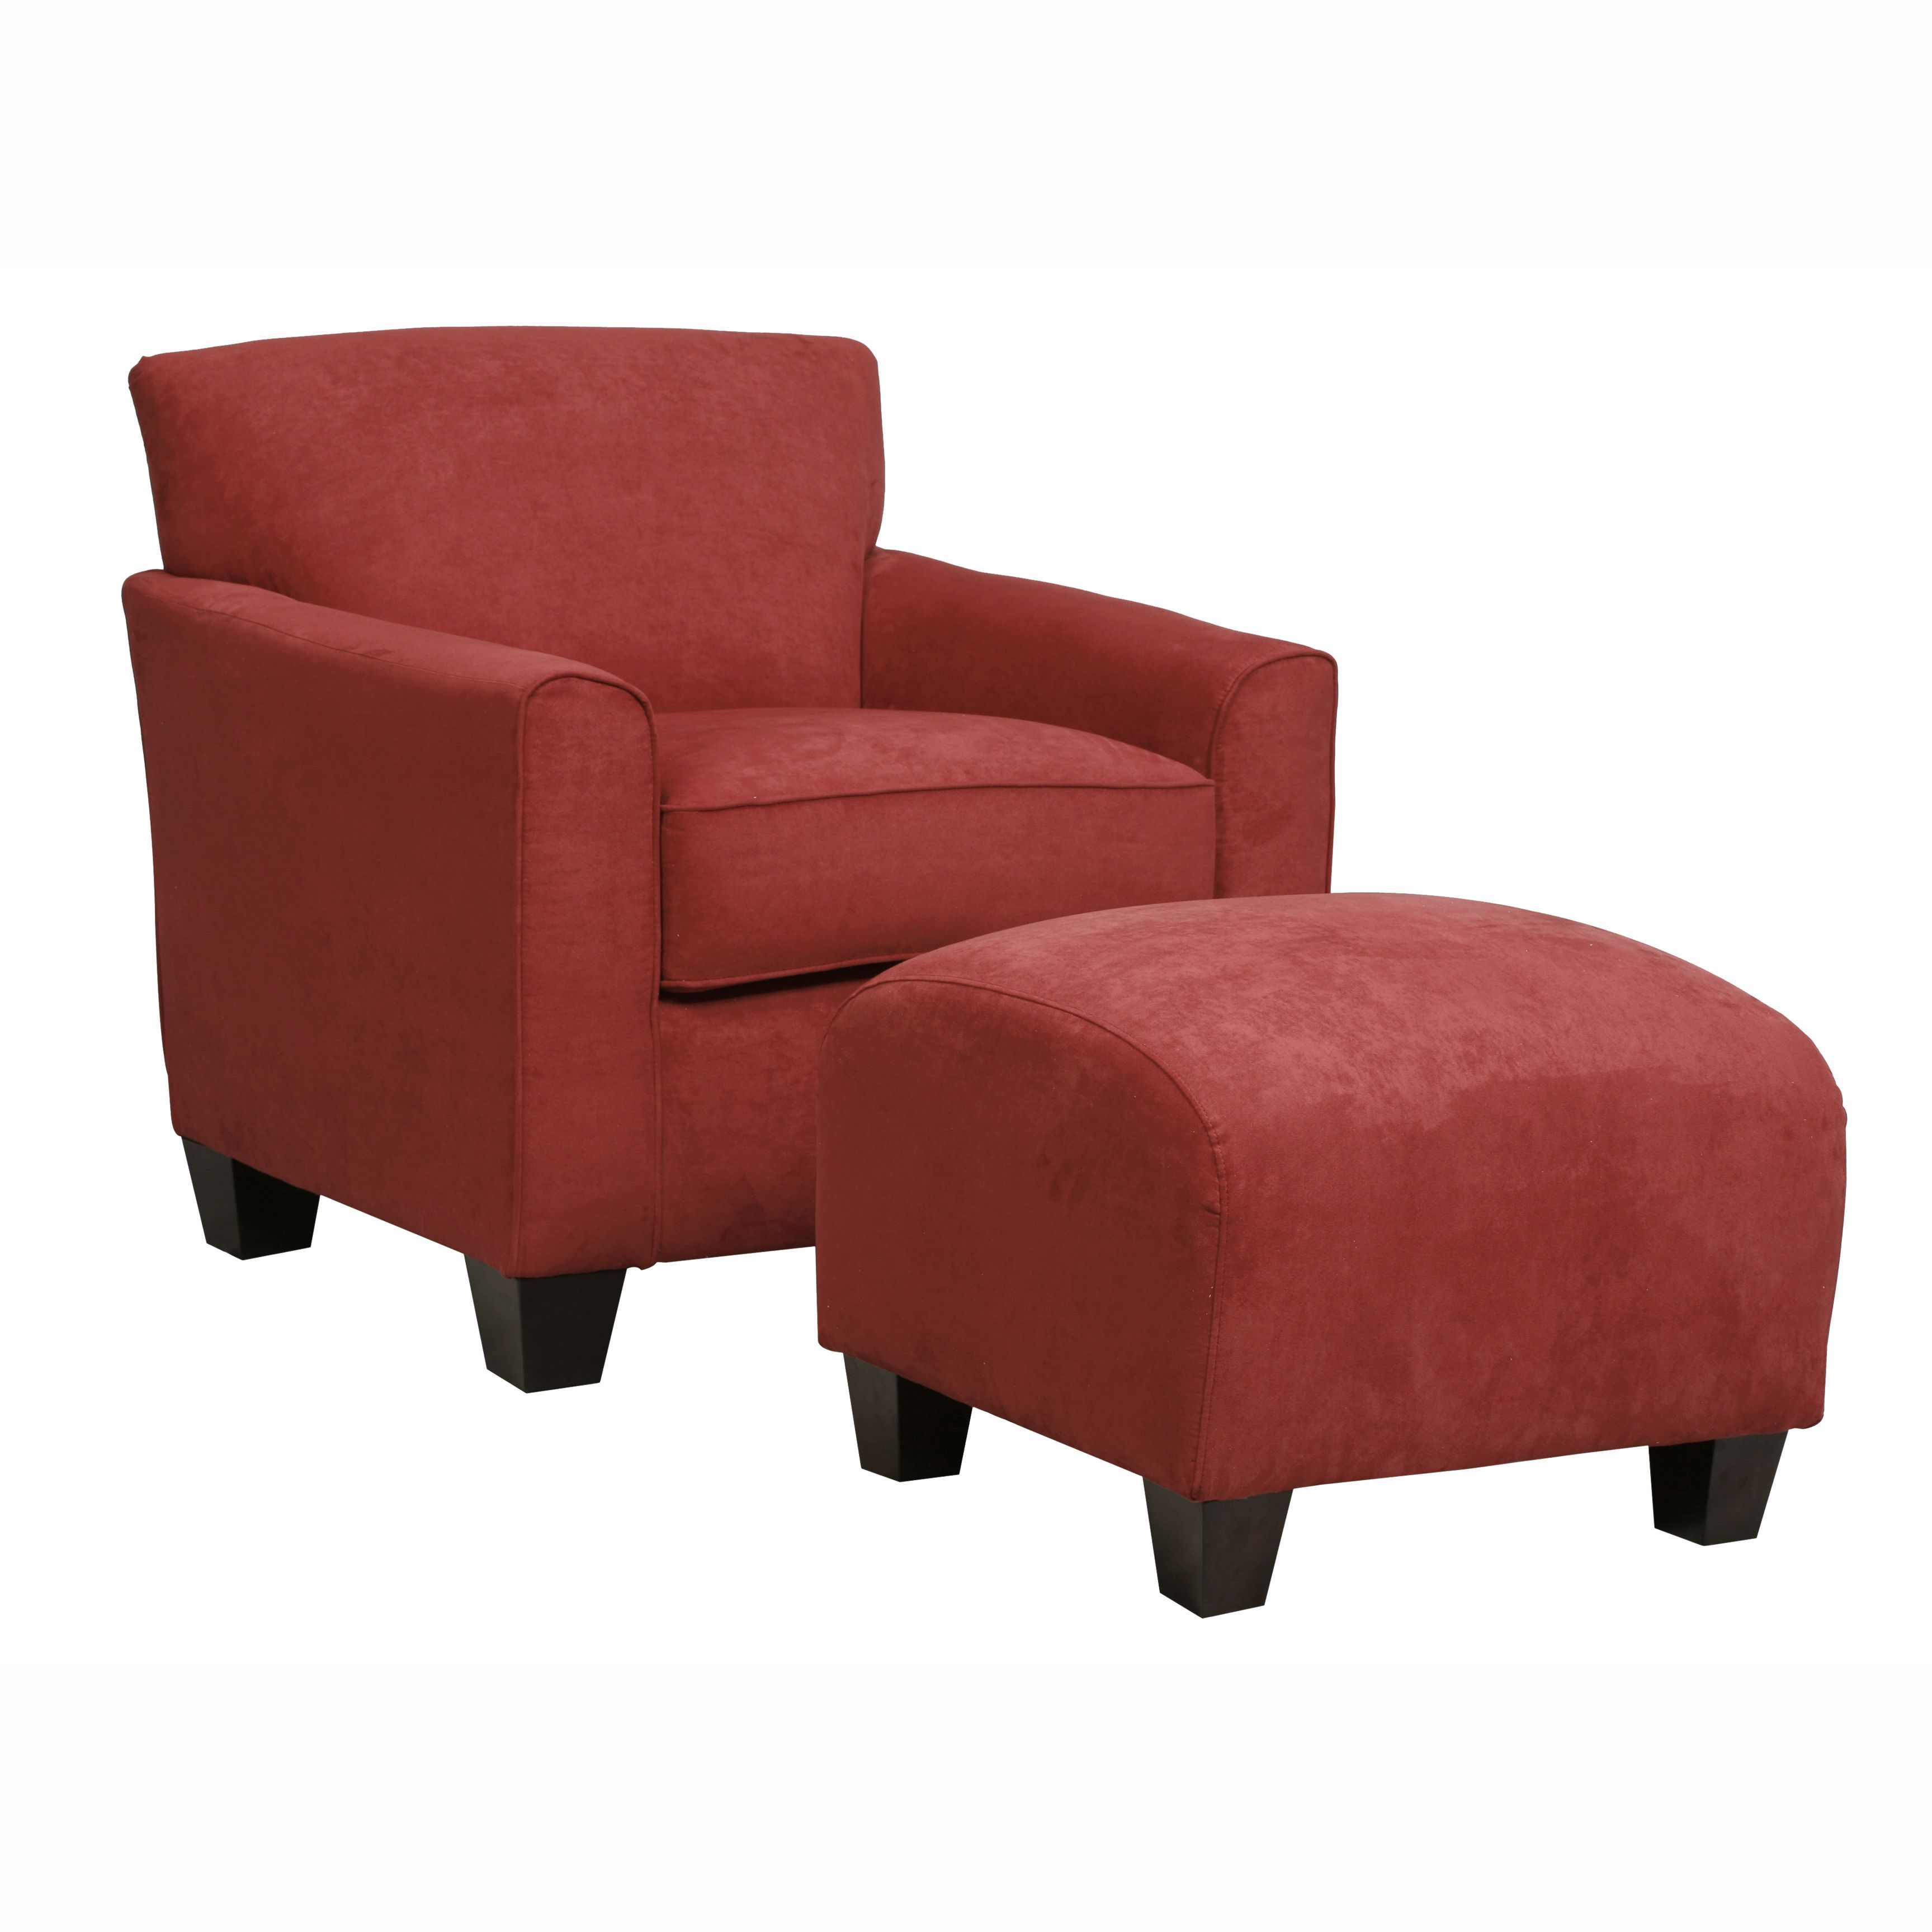 Handy living park avenue crimson red handtied chair and